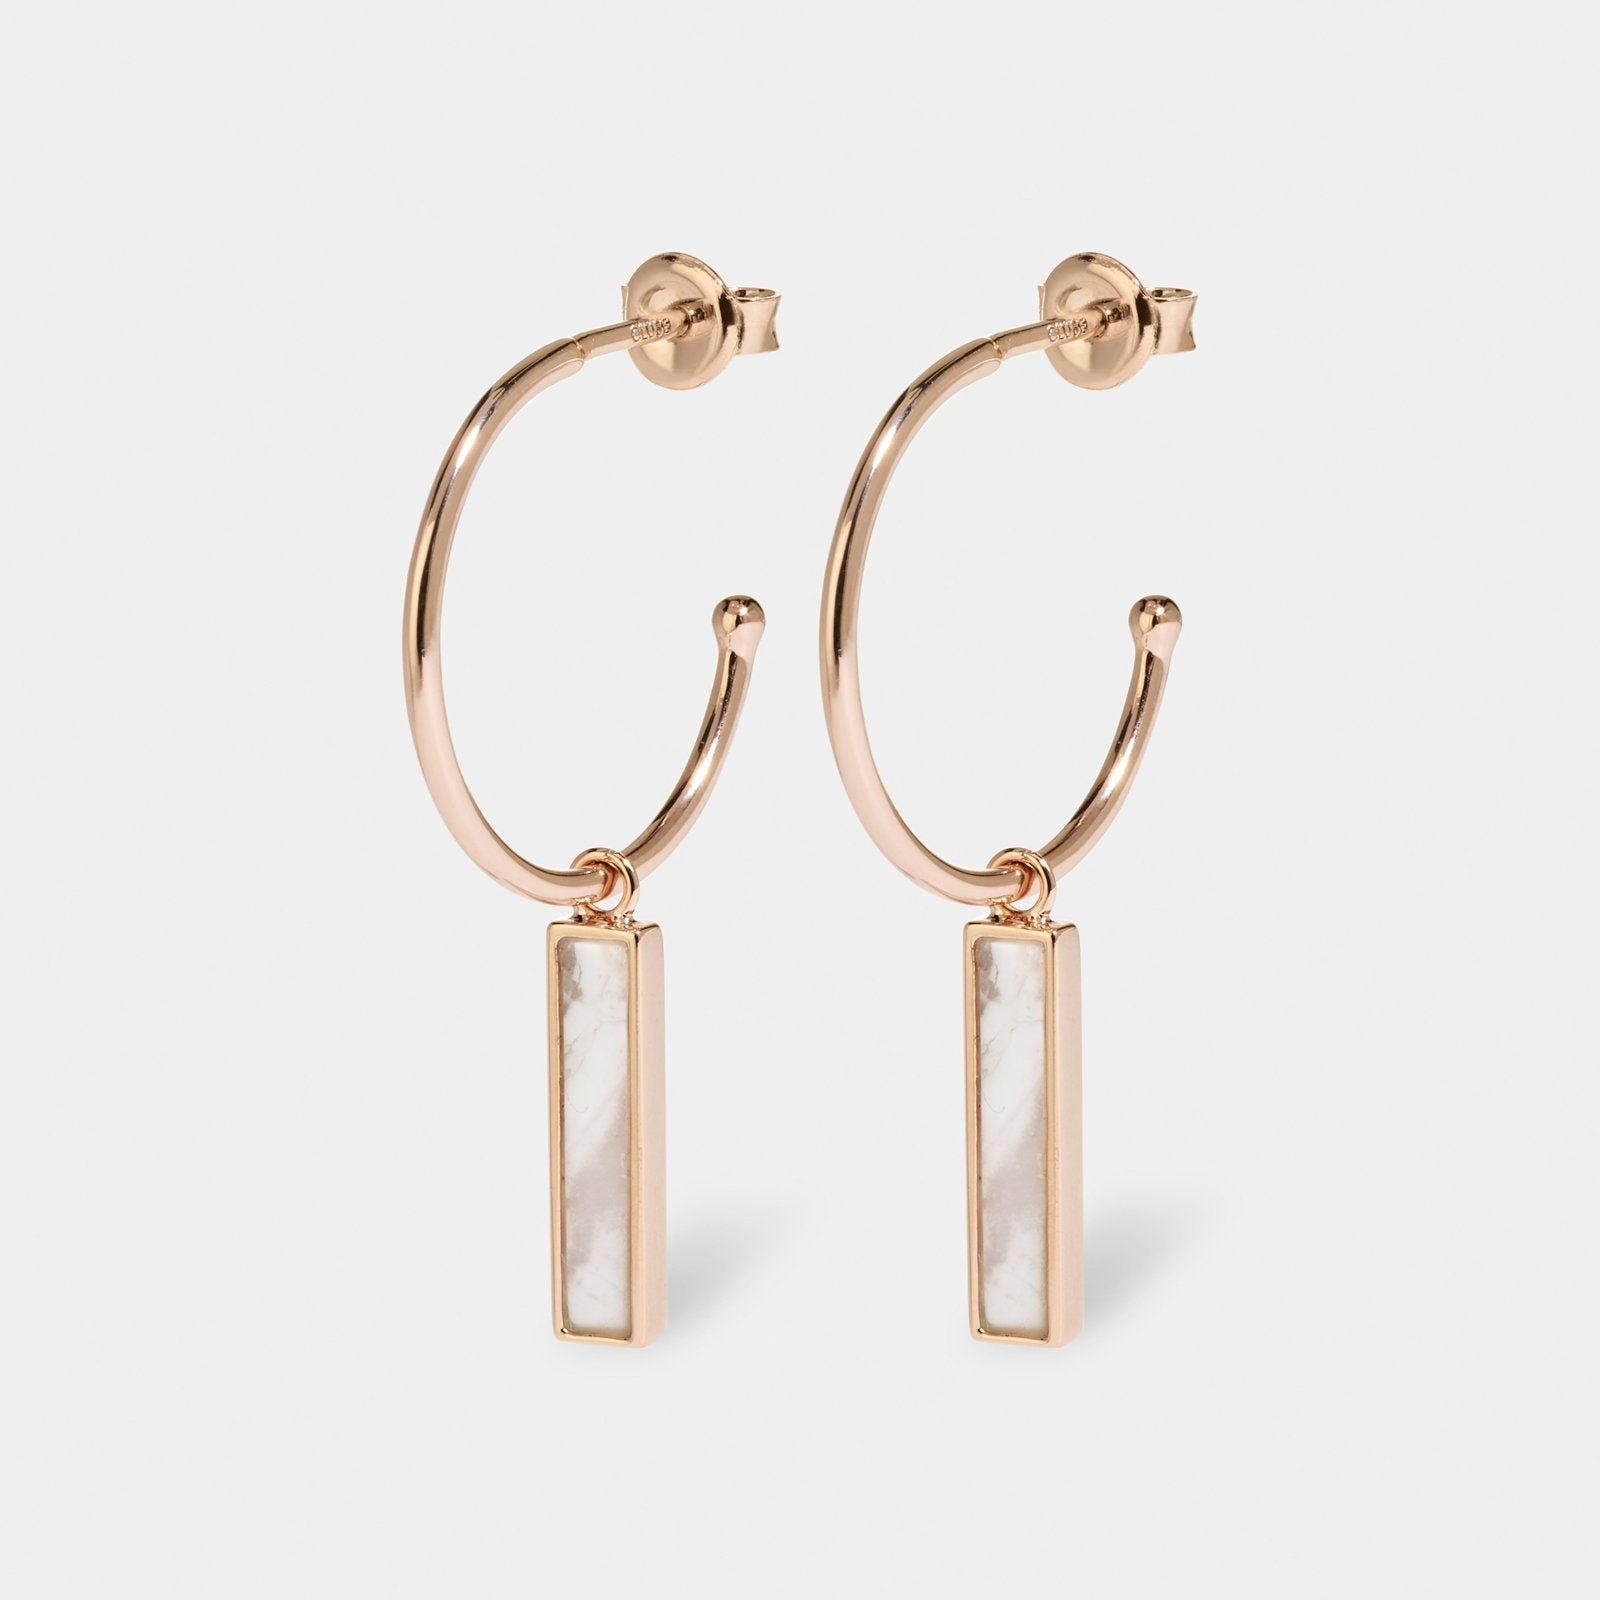 CLUSE Idylle Rose Gold Marble Bar Hoop Earrings CLJ50001 - earrings